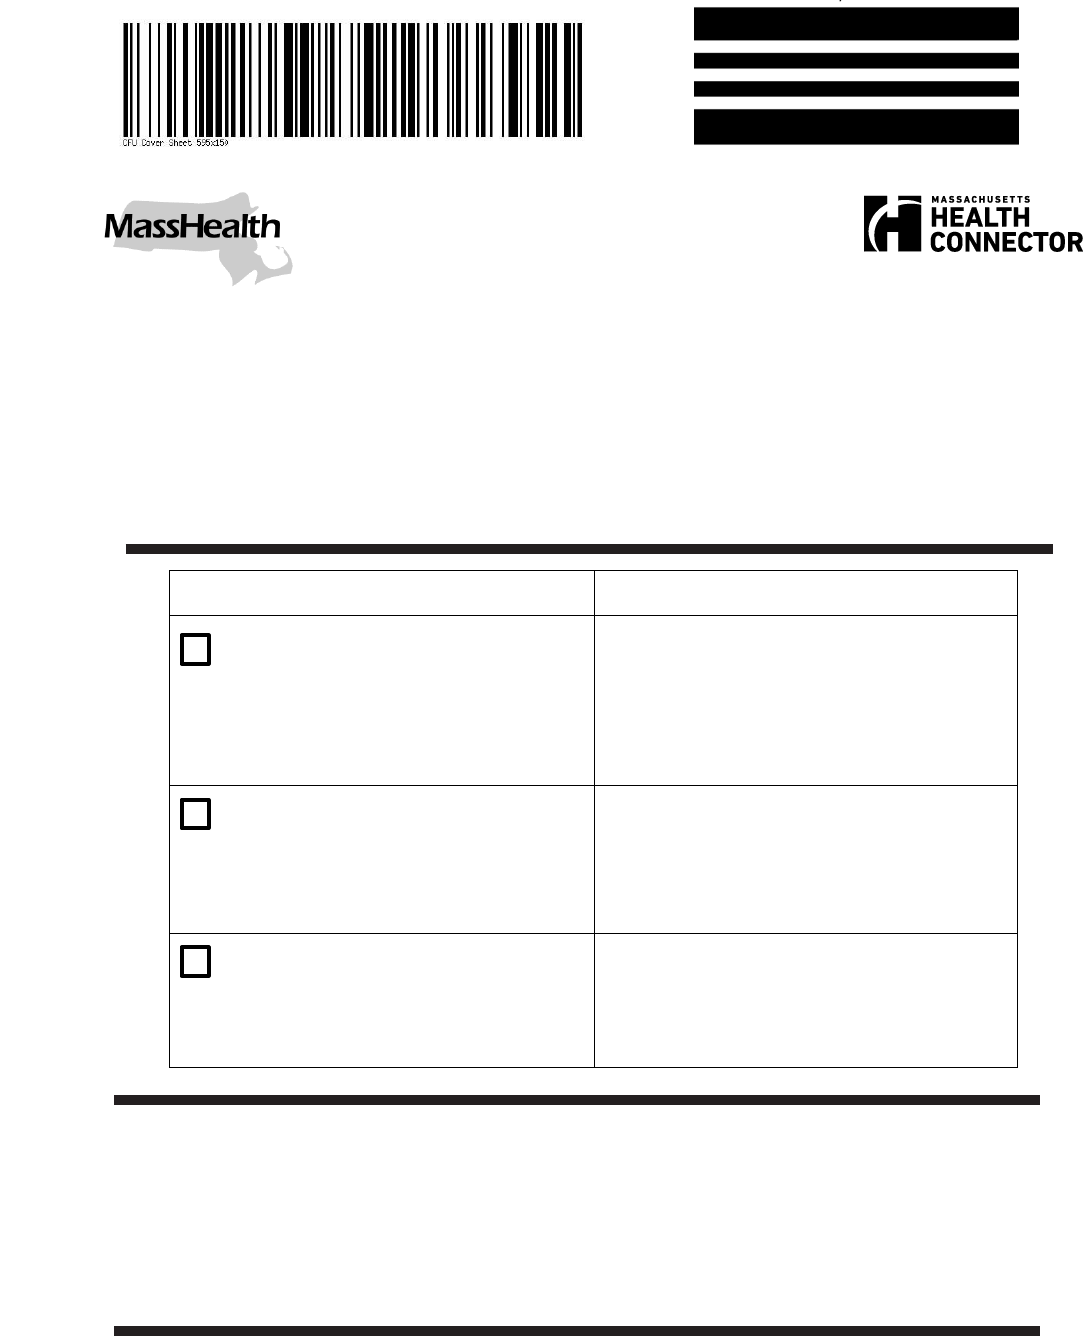 the masshealth health coverage mail fax cover sheet can help you masshealth health coverage mail fax cover sheet